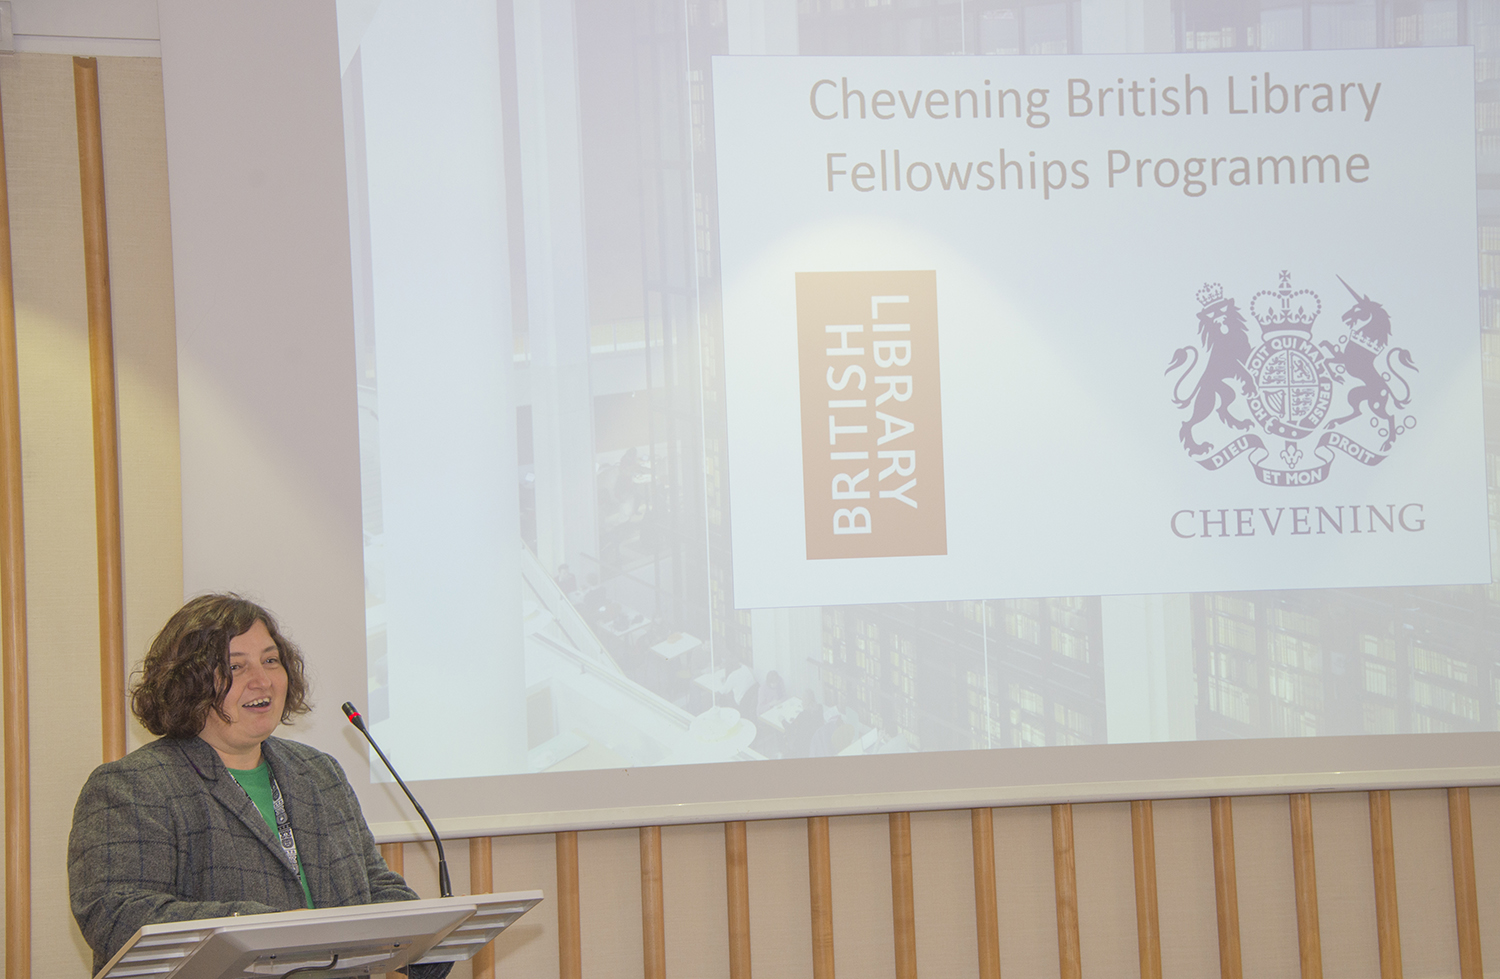 Maja Maricevic addresses the audience about the British Library Fellowship